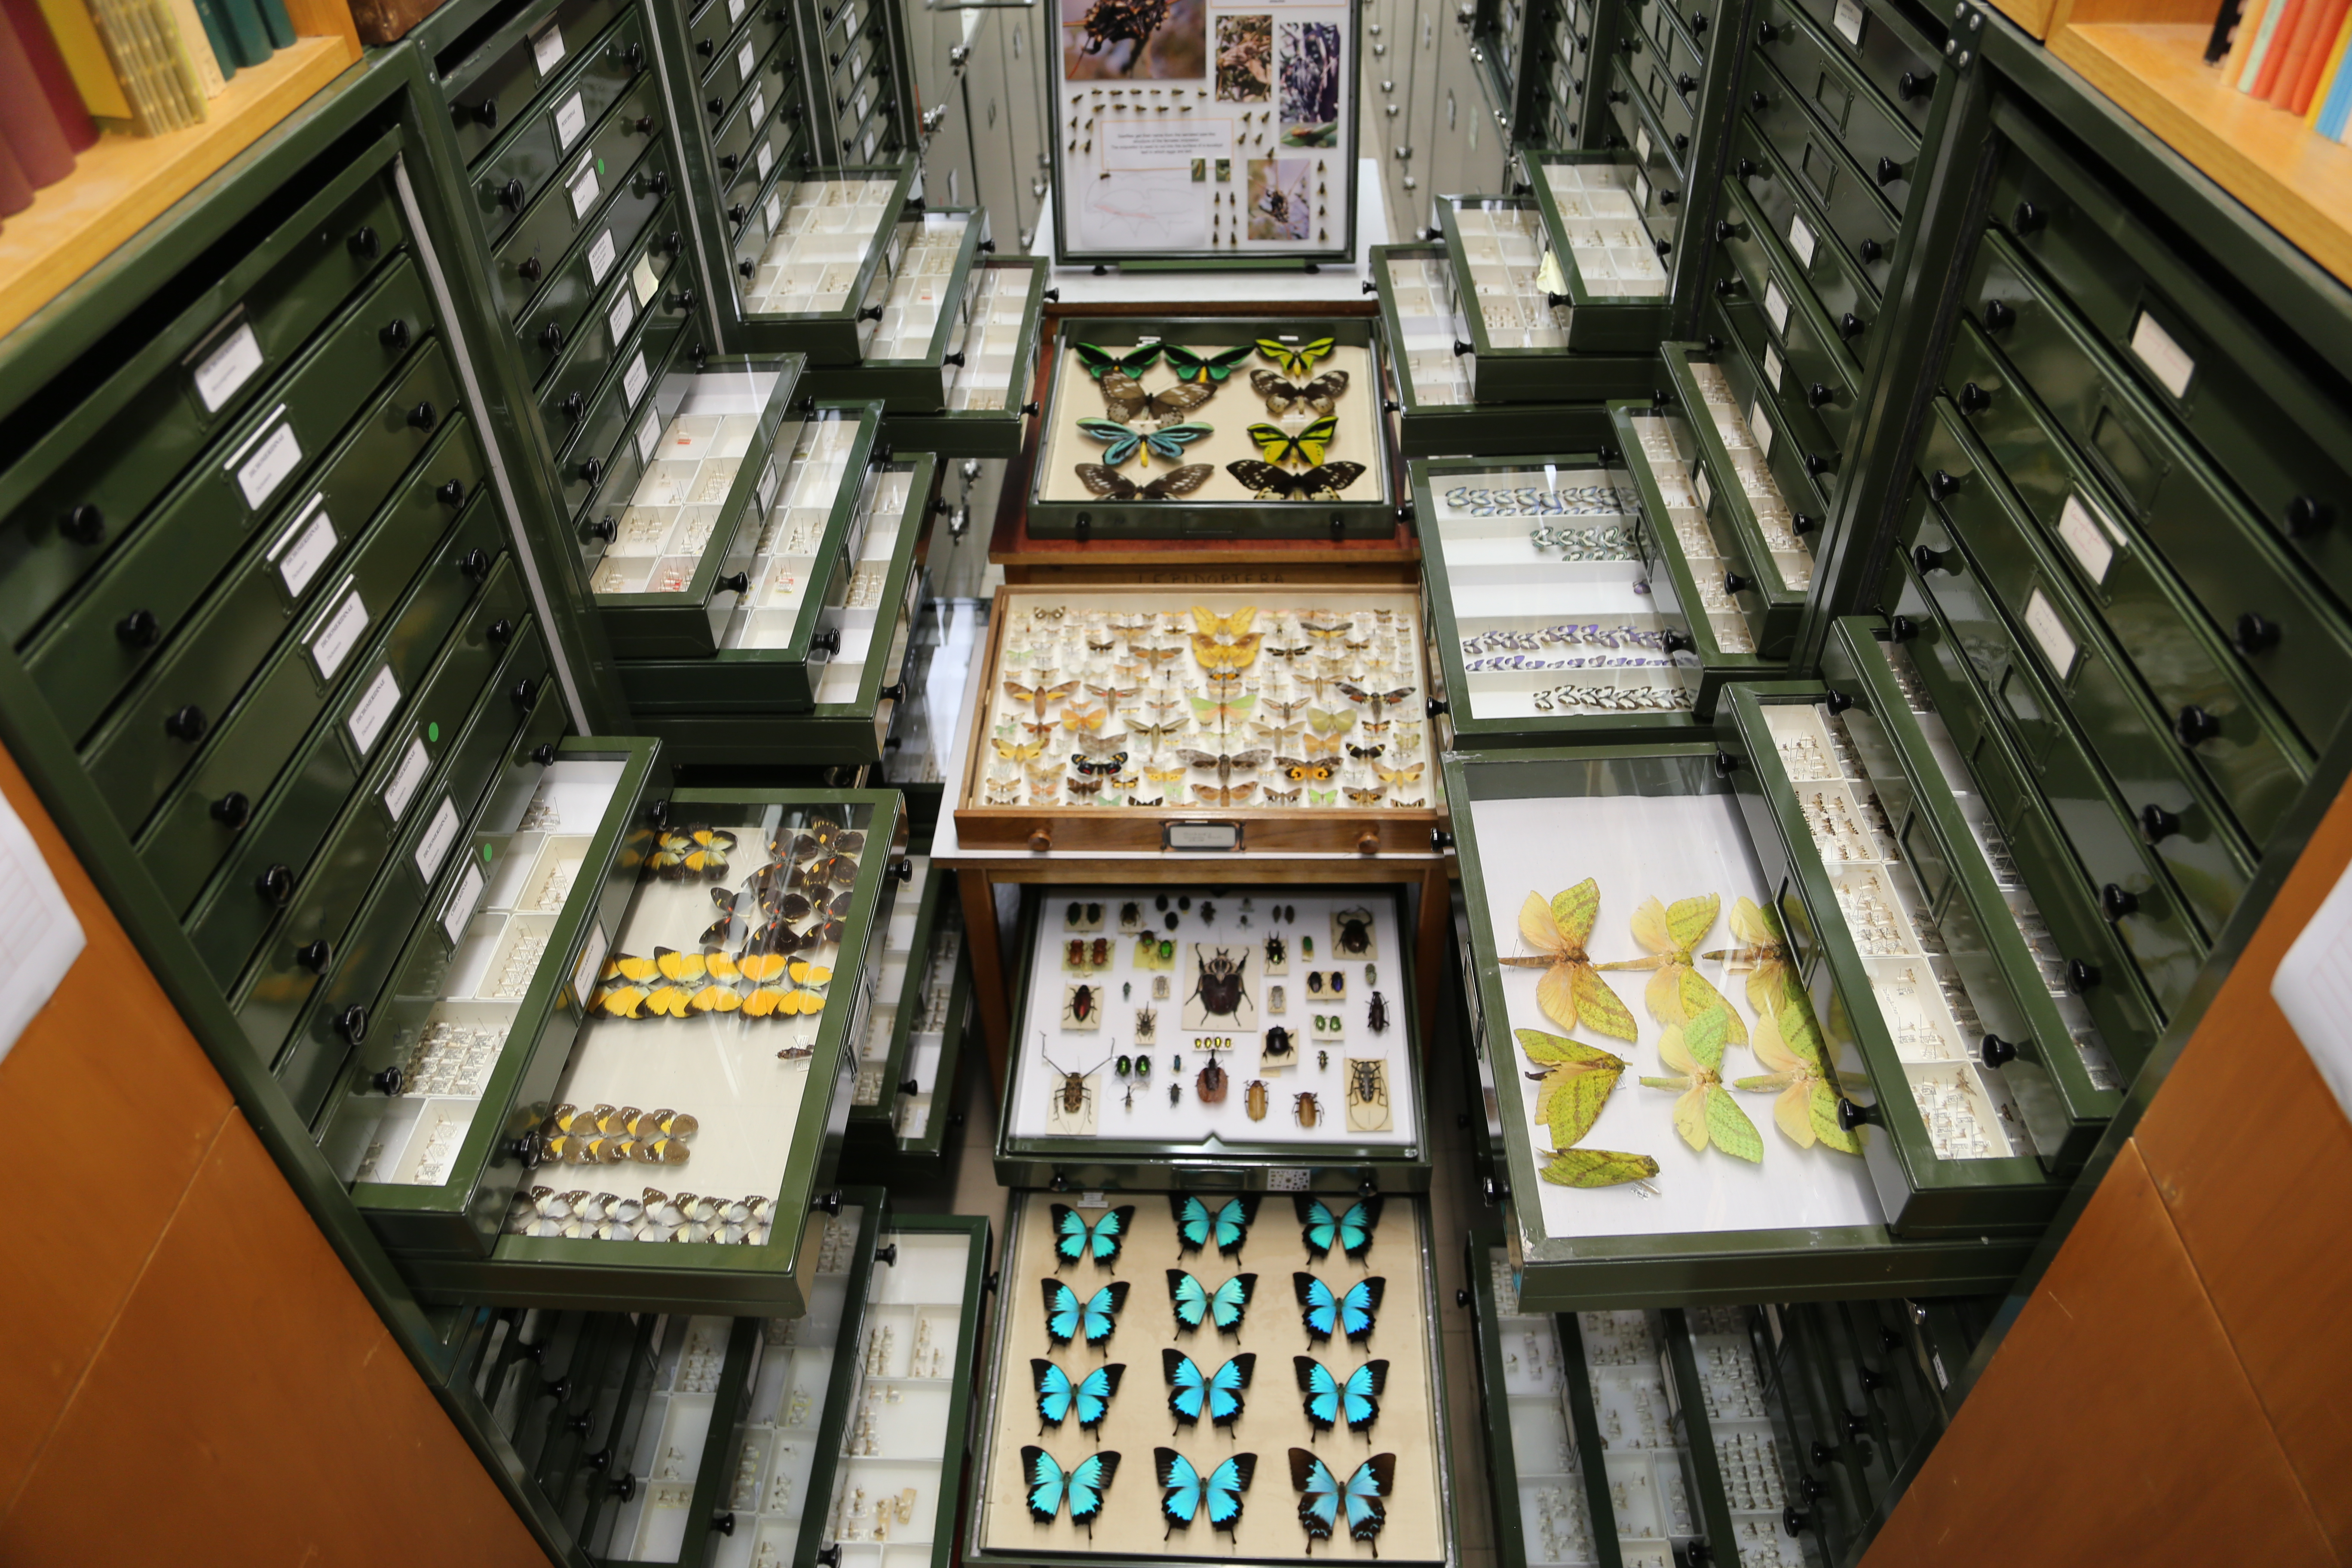 There are over 34 million biological specimens in Australia's museums. To date about 20 per cent has been databased, and work continues to unlock the data associated with these invaluable collections. Copyright: Australian National Insect Collection.